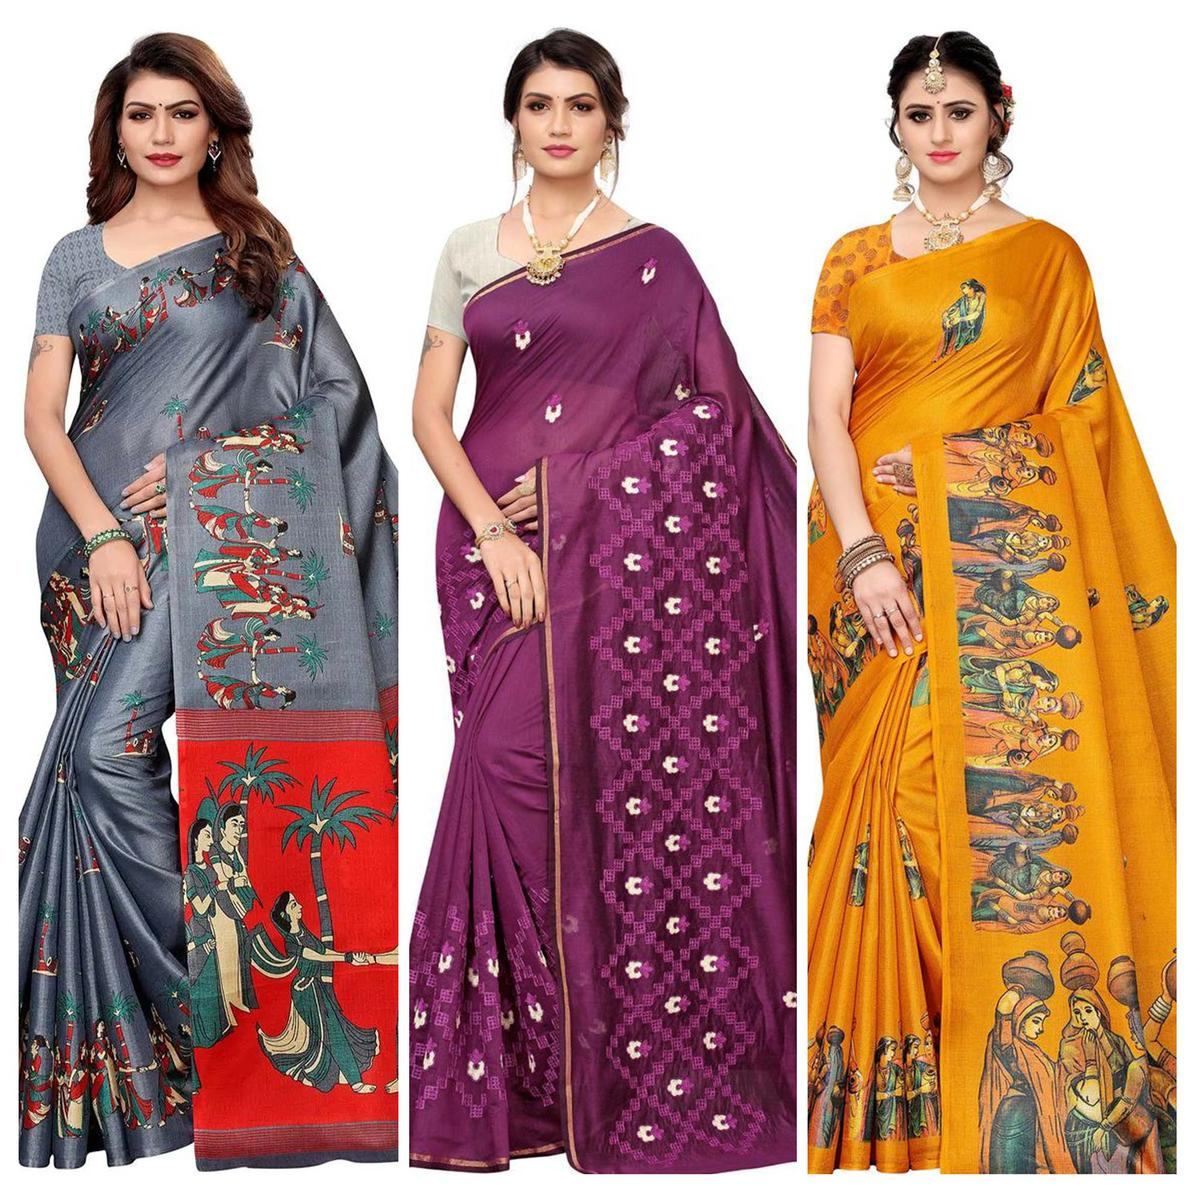 Intricate Printed-Embroidered Silk Saree - Pack of 3